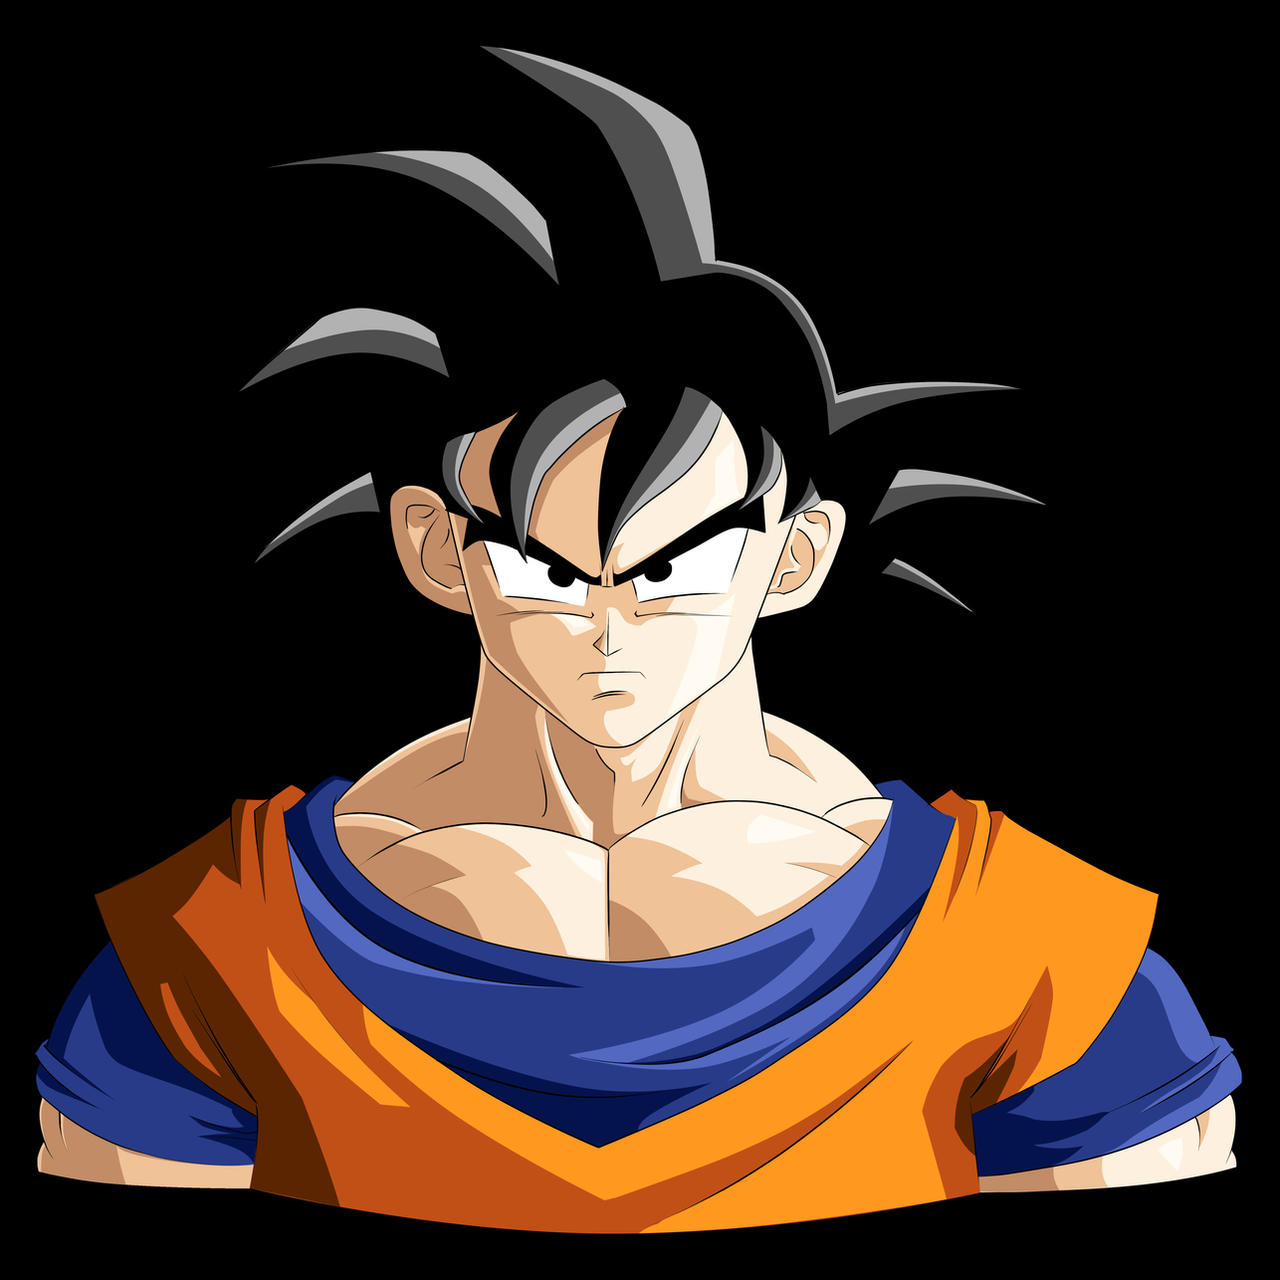 Goku - Normal form. by b36one on DeviantArt